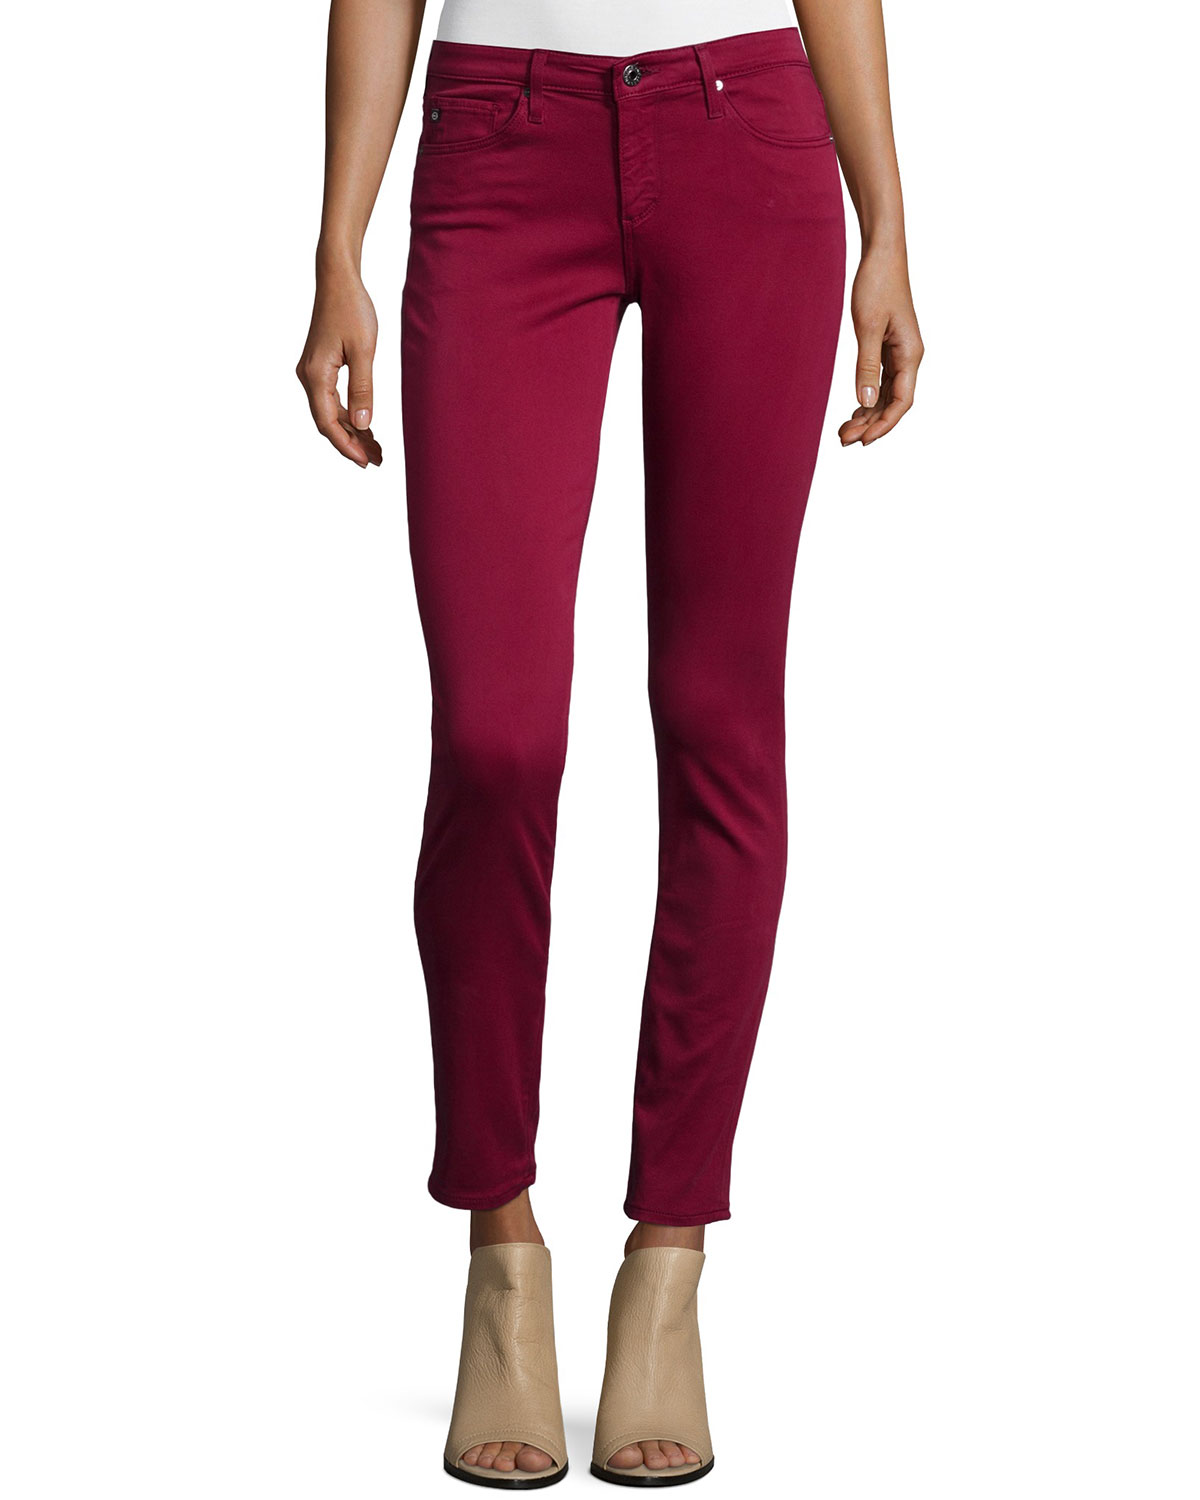 AG Adriano Goldschmied Sateen Stilt Ankle Cigarette, Cabernet Red, Size: 28, Cabernet (Red)